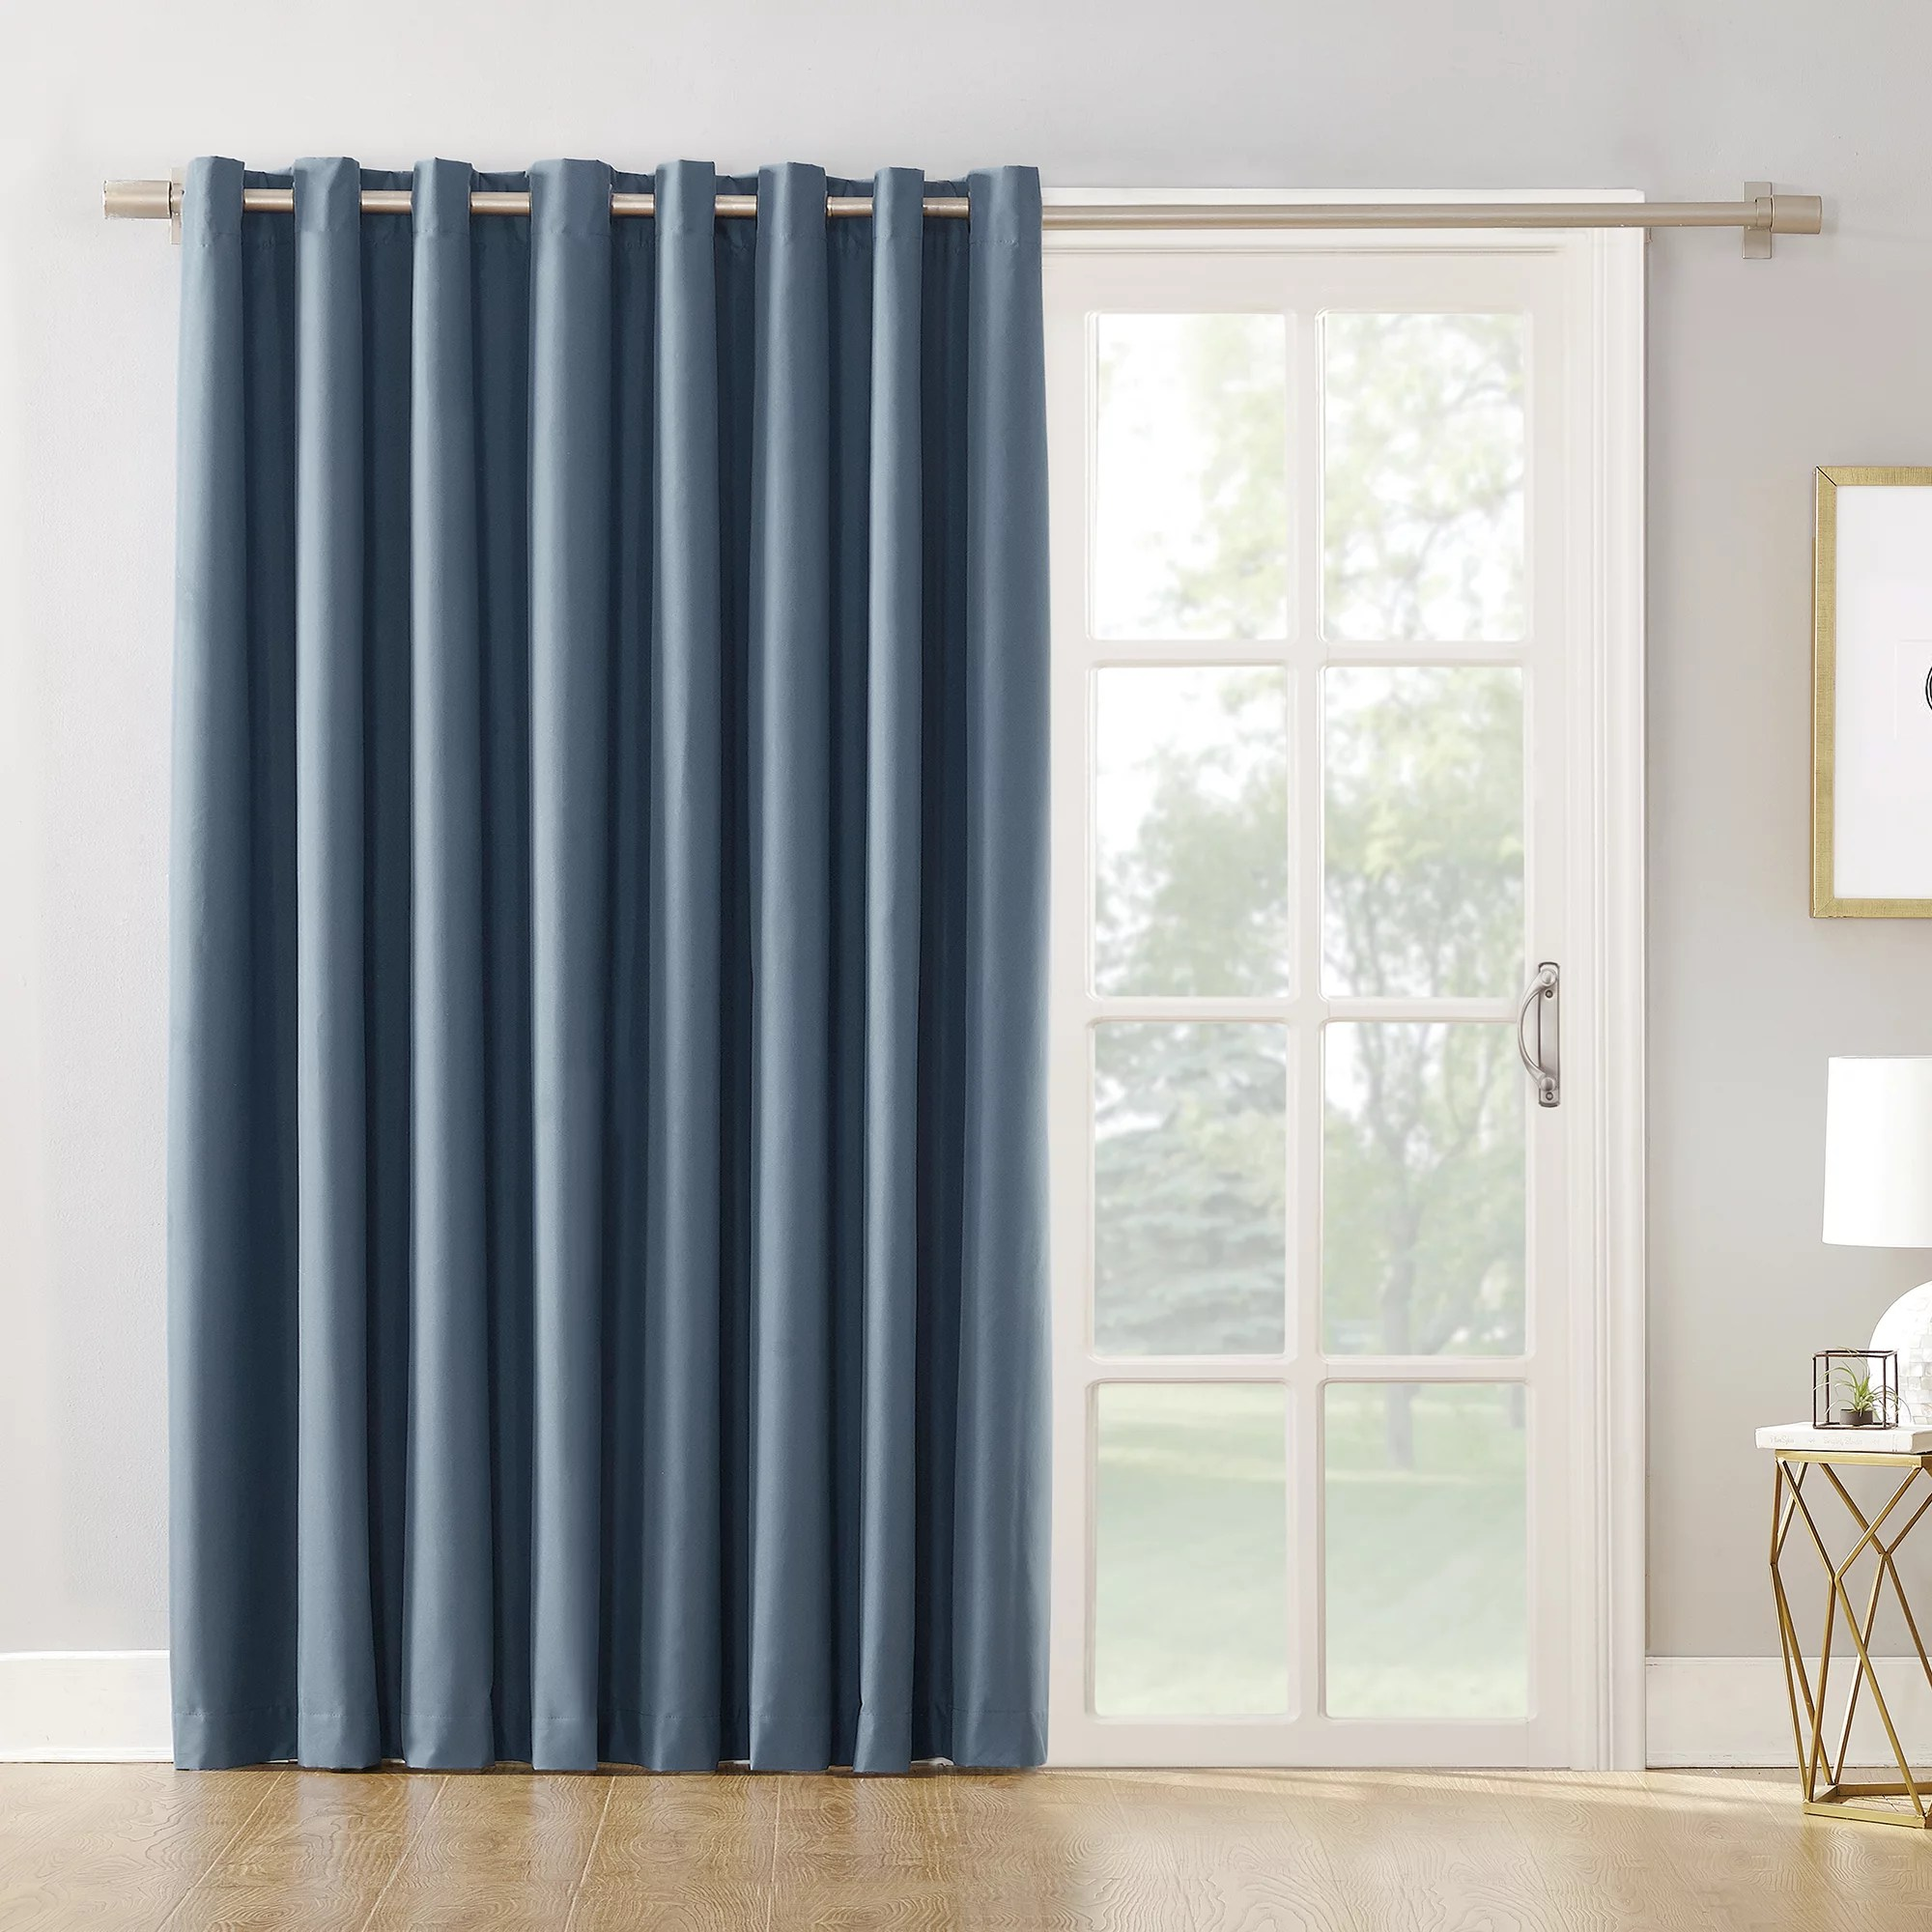 Thermal Patio Door Curtains With Grommets Mainstays Sliding Glass Door Thermal Lined Room Darkening Grommet Curtain Panel